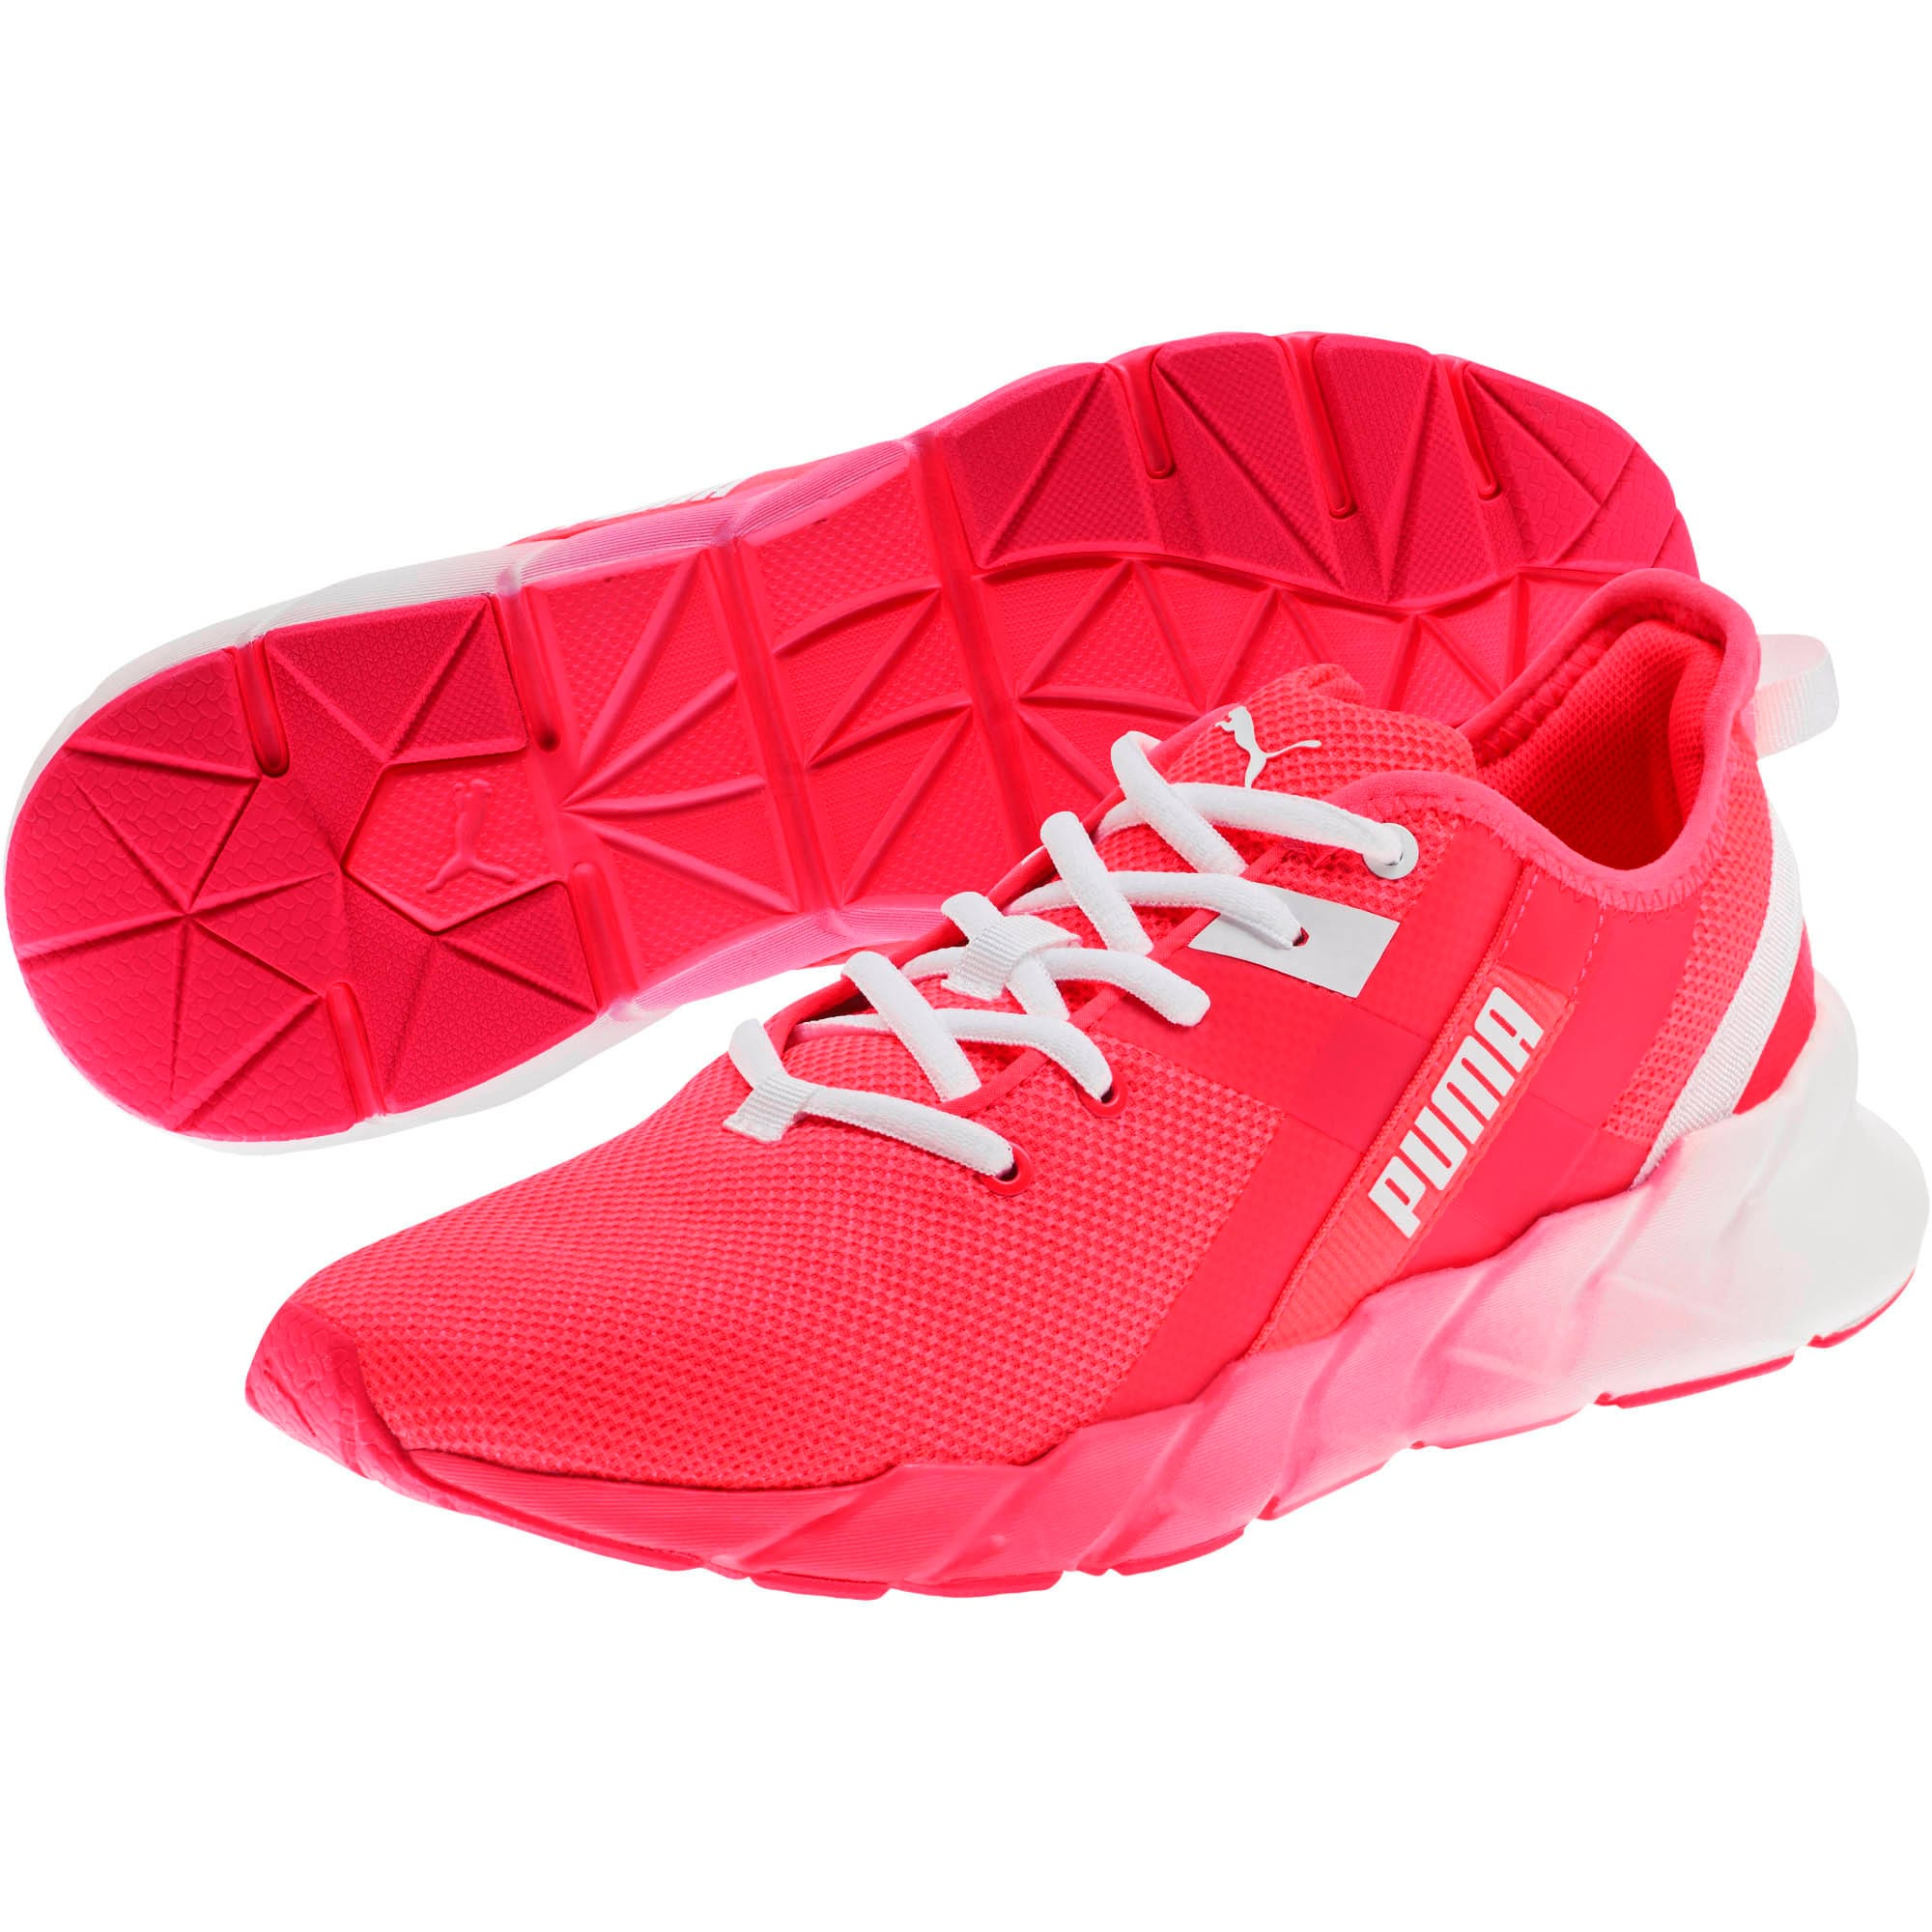 Thumbnail 2 of Weave XT Fade Women's Training Shoes, Pink Alert-Puma White, medium